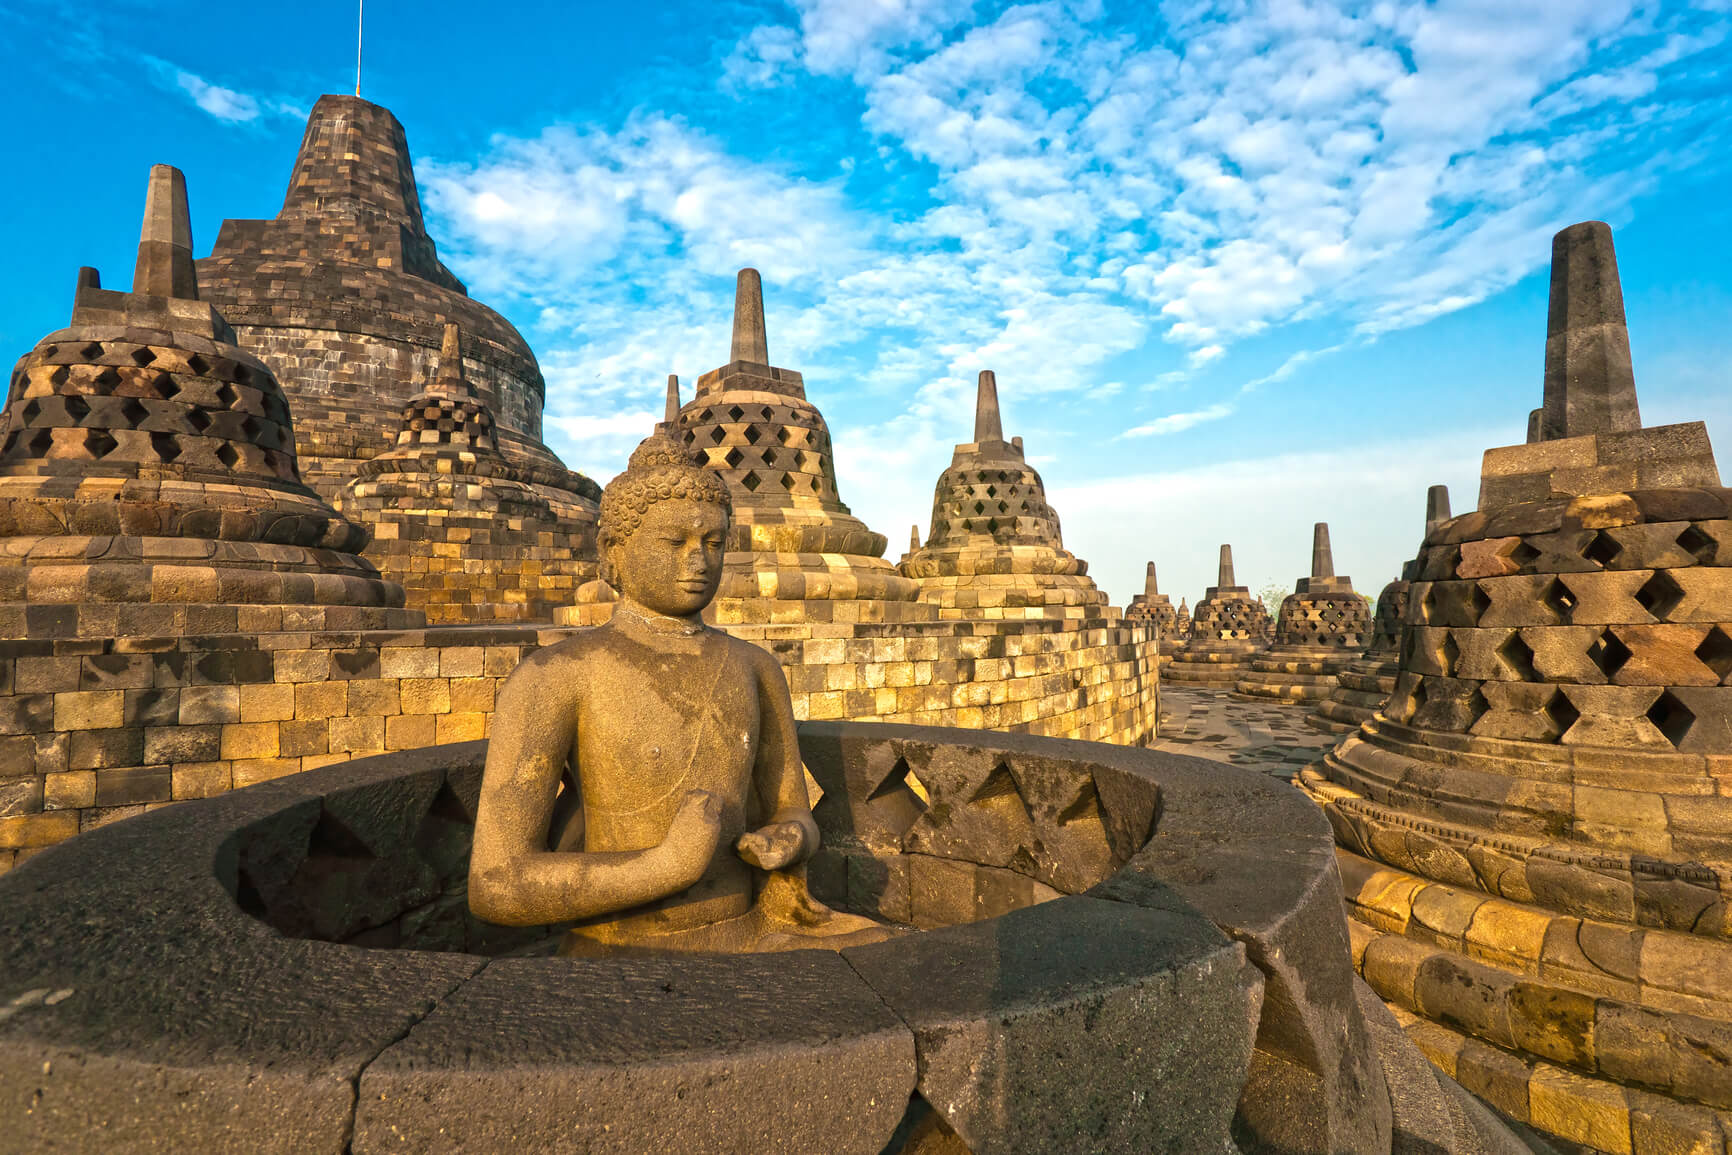 Munich, Germany to Jakarta, Indonesia for only €399 roundtrip